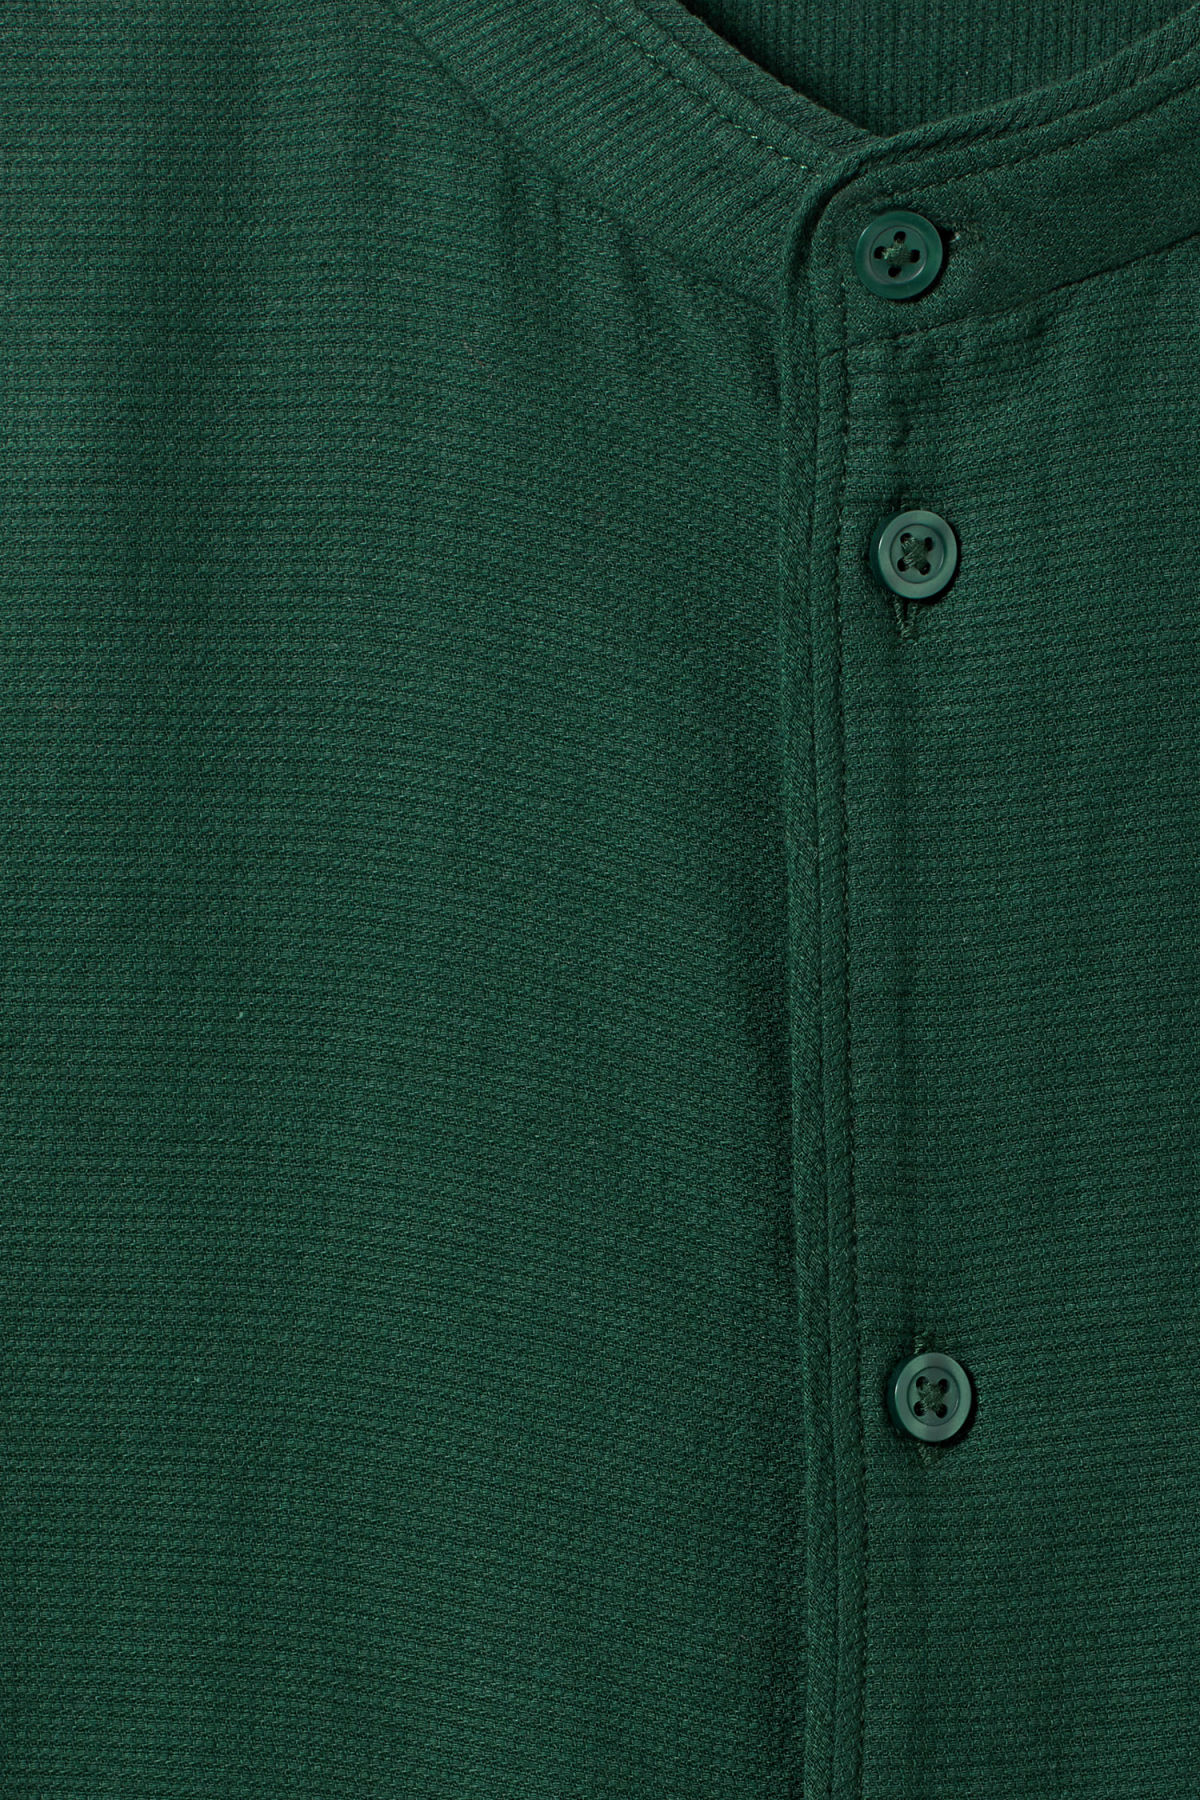 Detailed image of Weekday hunt shirt in green